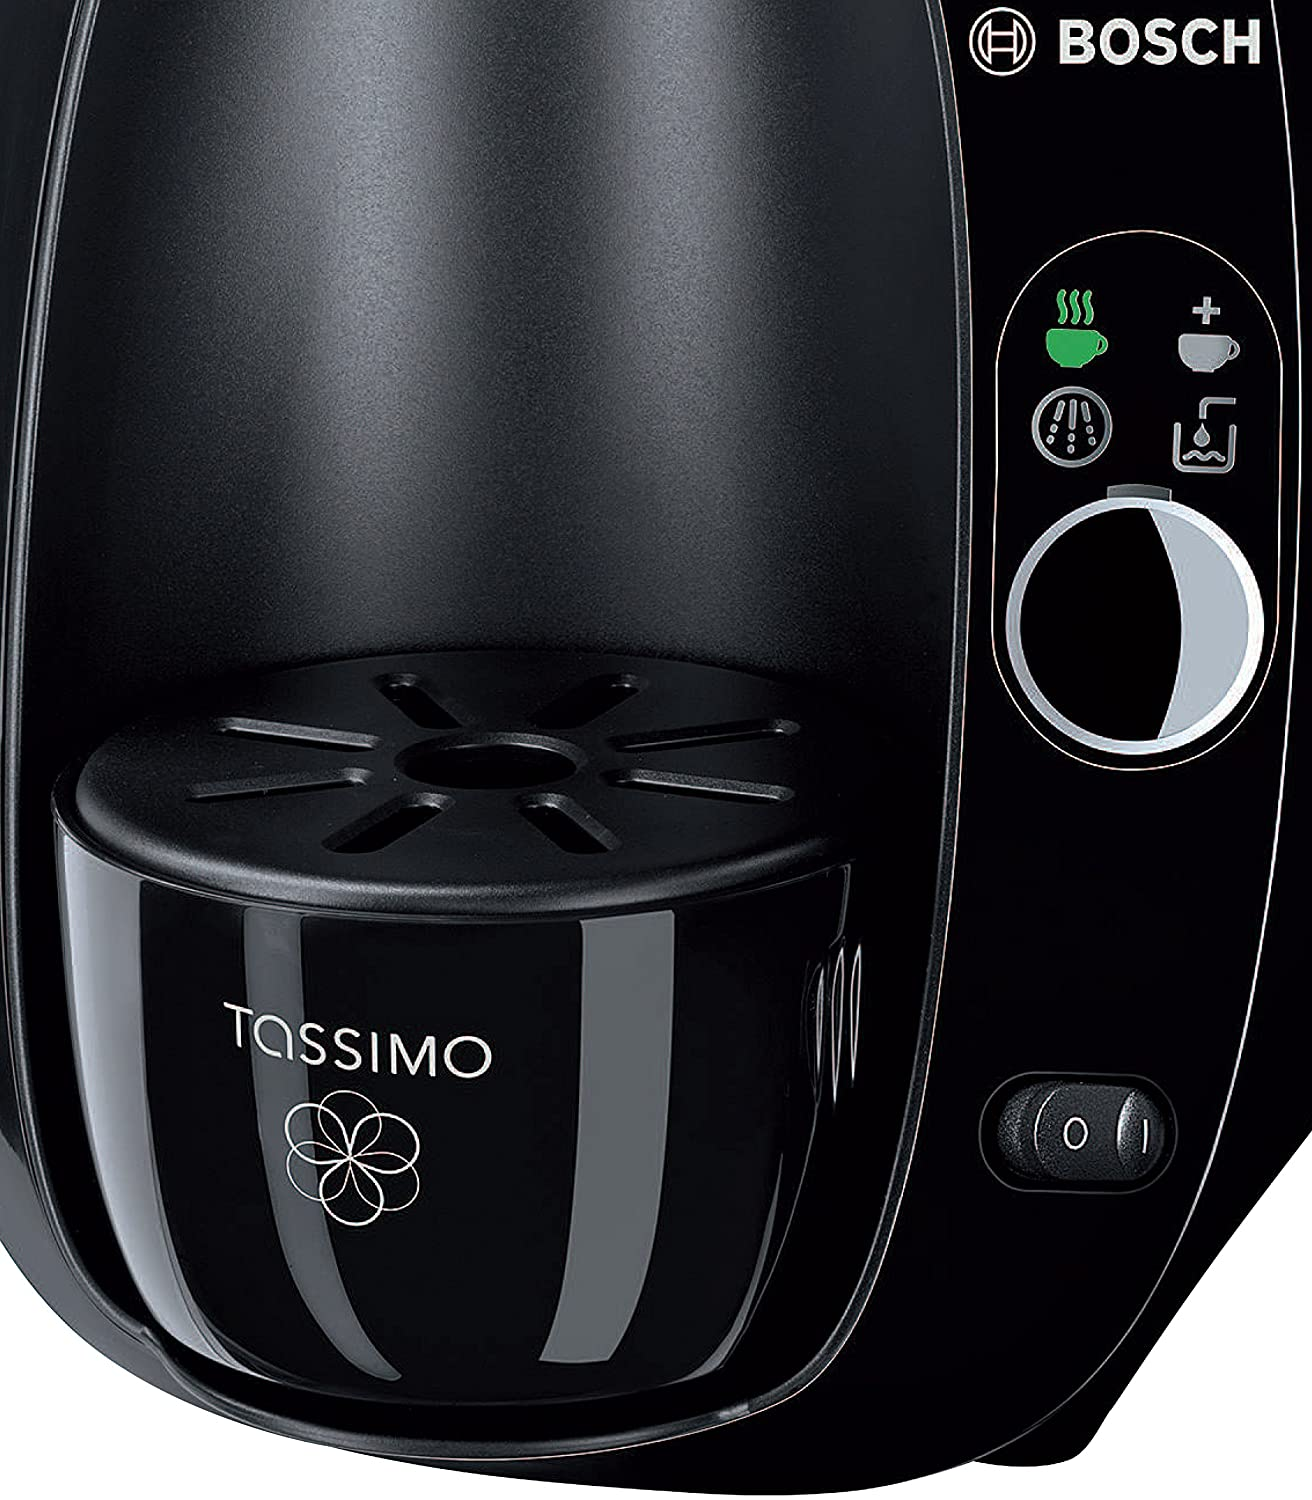 Bosch Tassimo Coffee Maker Models : Bosch Tassimo T20 Amia Hot Beverage Coffee Espresso Maker Machine TAS2002GB NEW 4242002644998 eBay